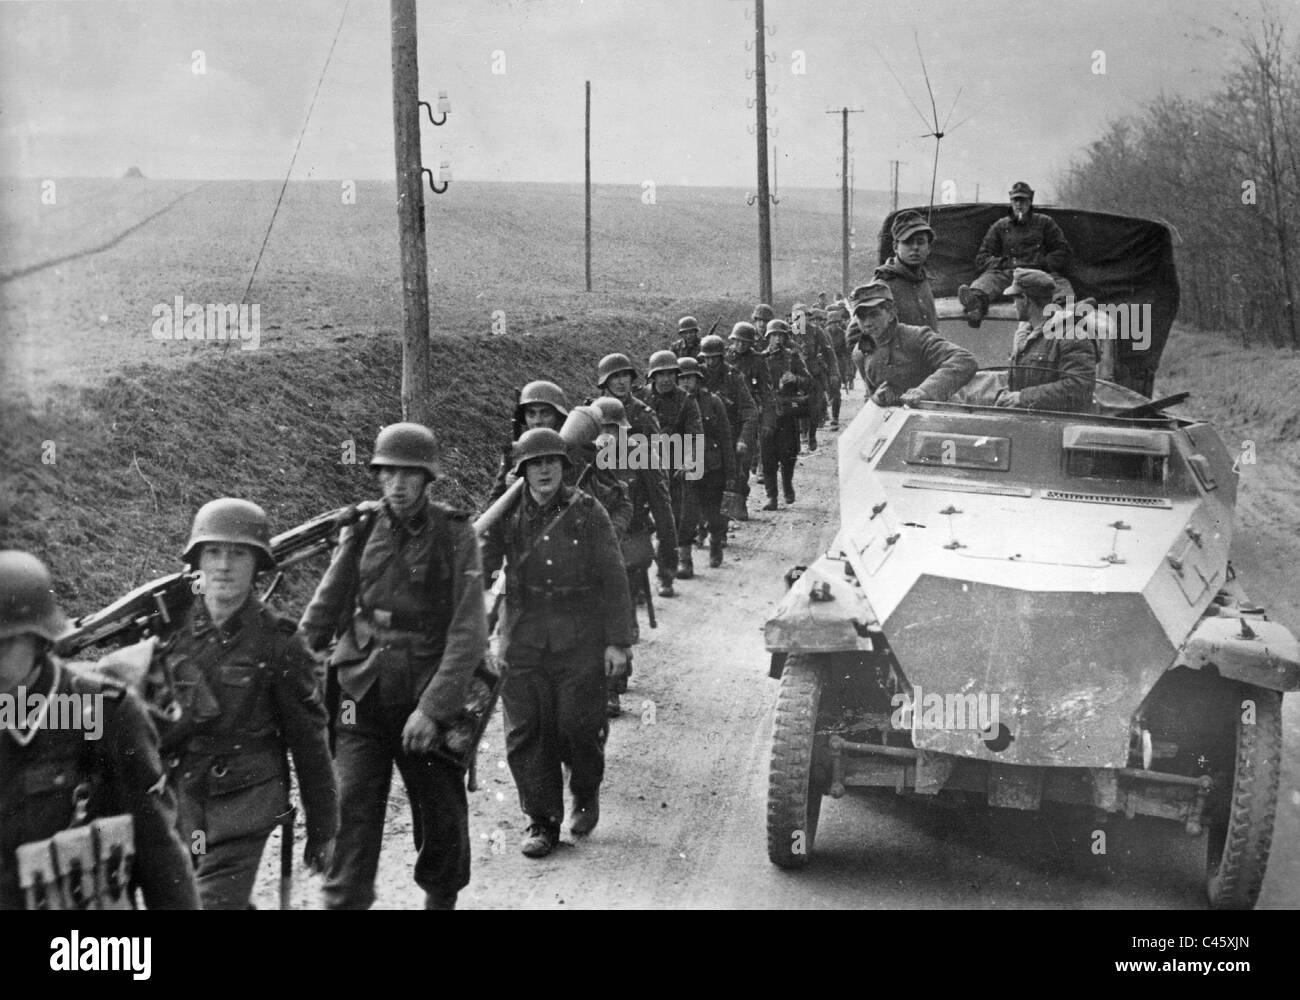 http://c8.alamy.com/comp/C45XJN/ss-grenadiers-on-the-way-to-the-front-in-hungary-1945-C45XJN.jpg